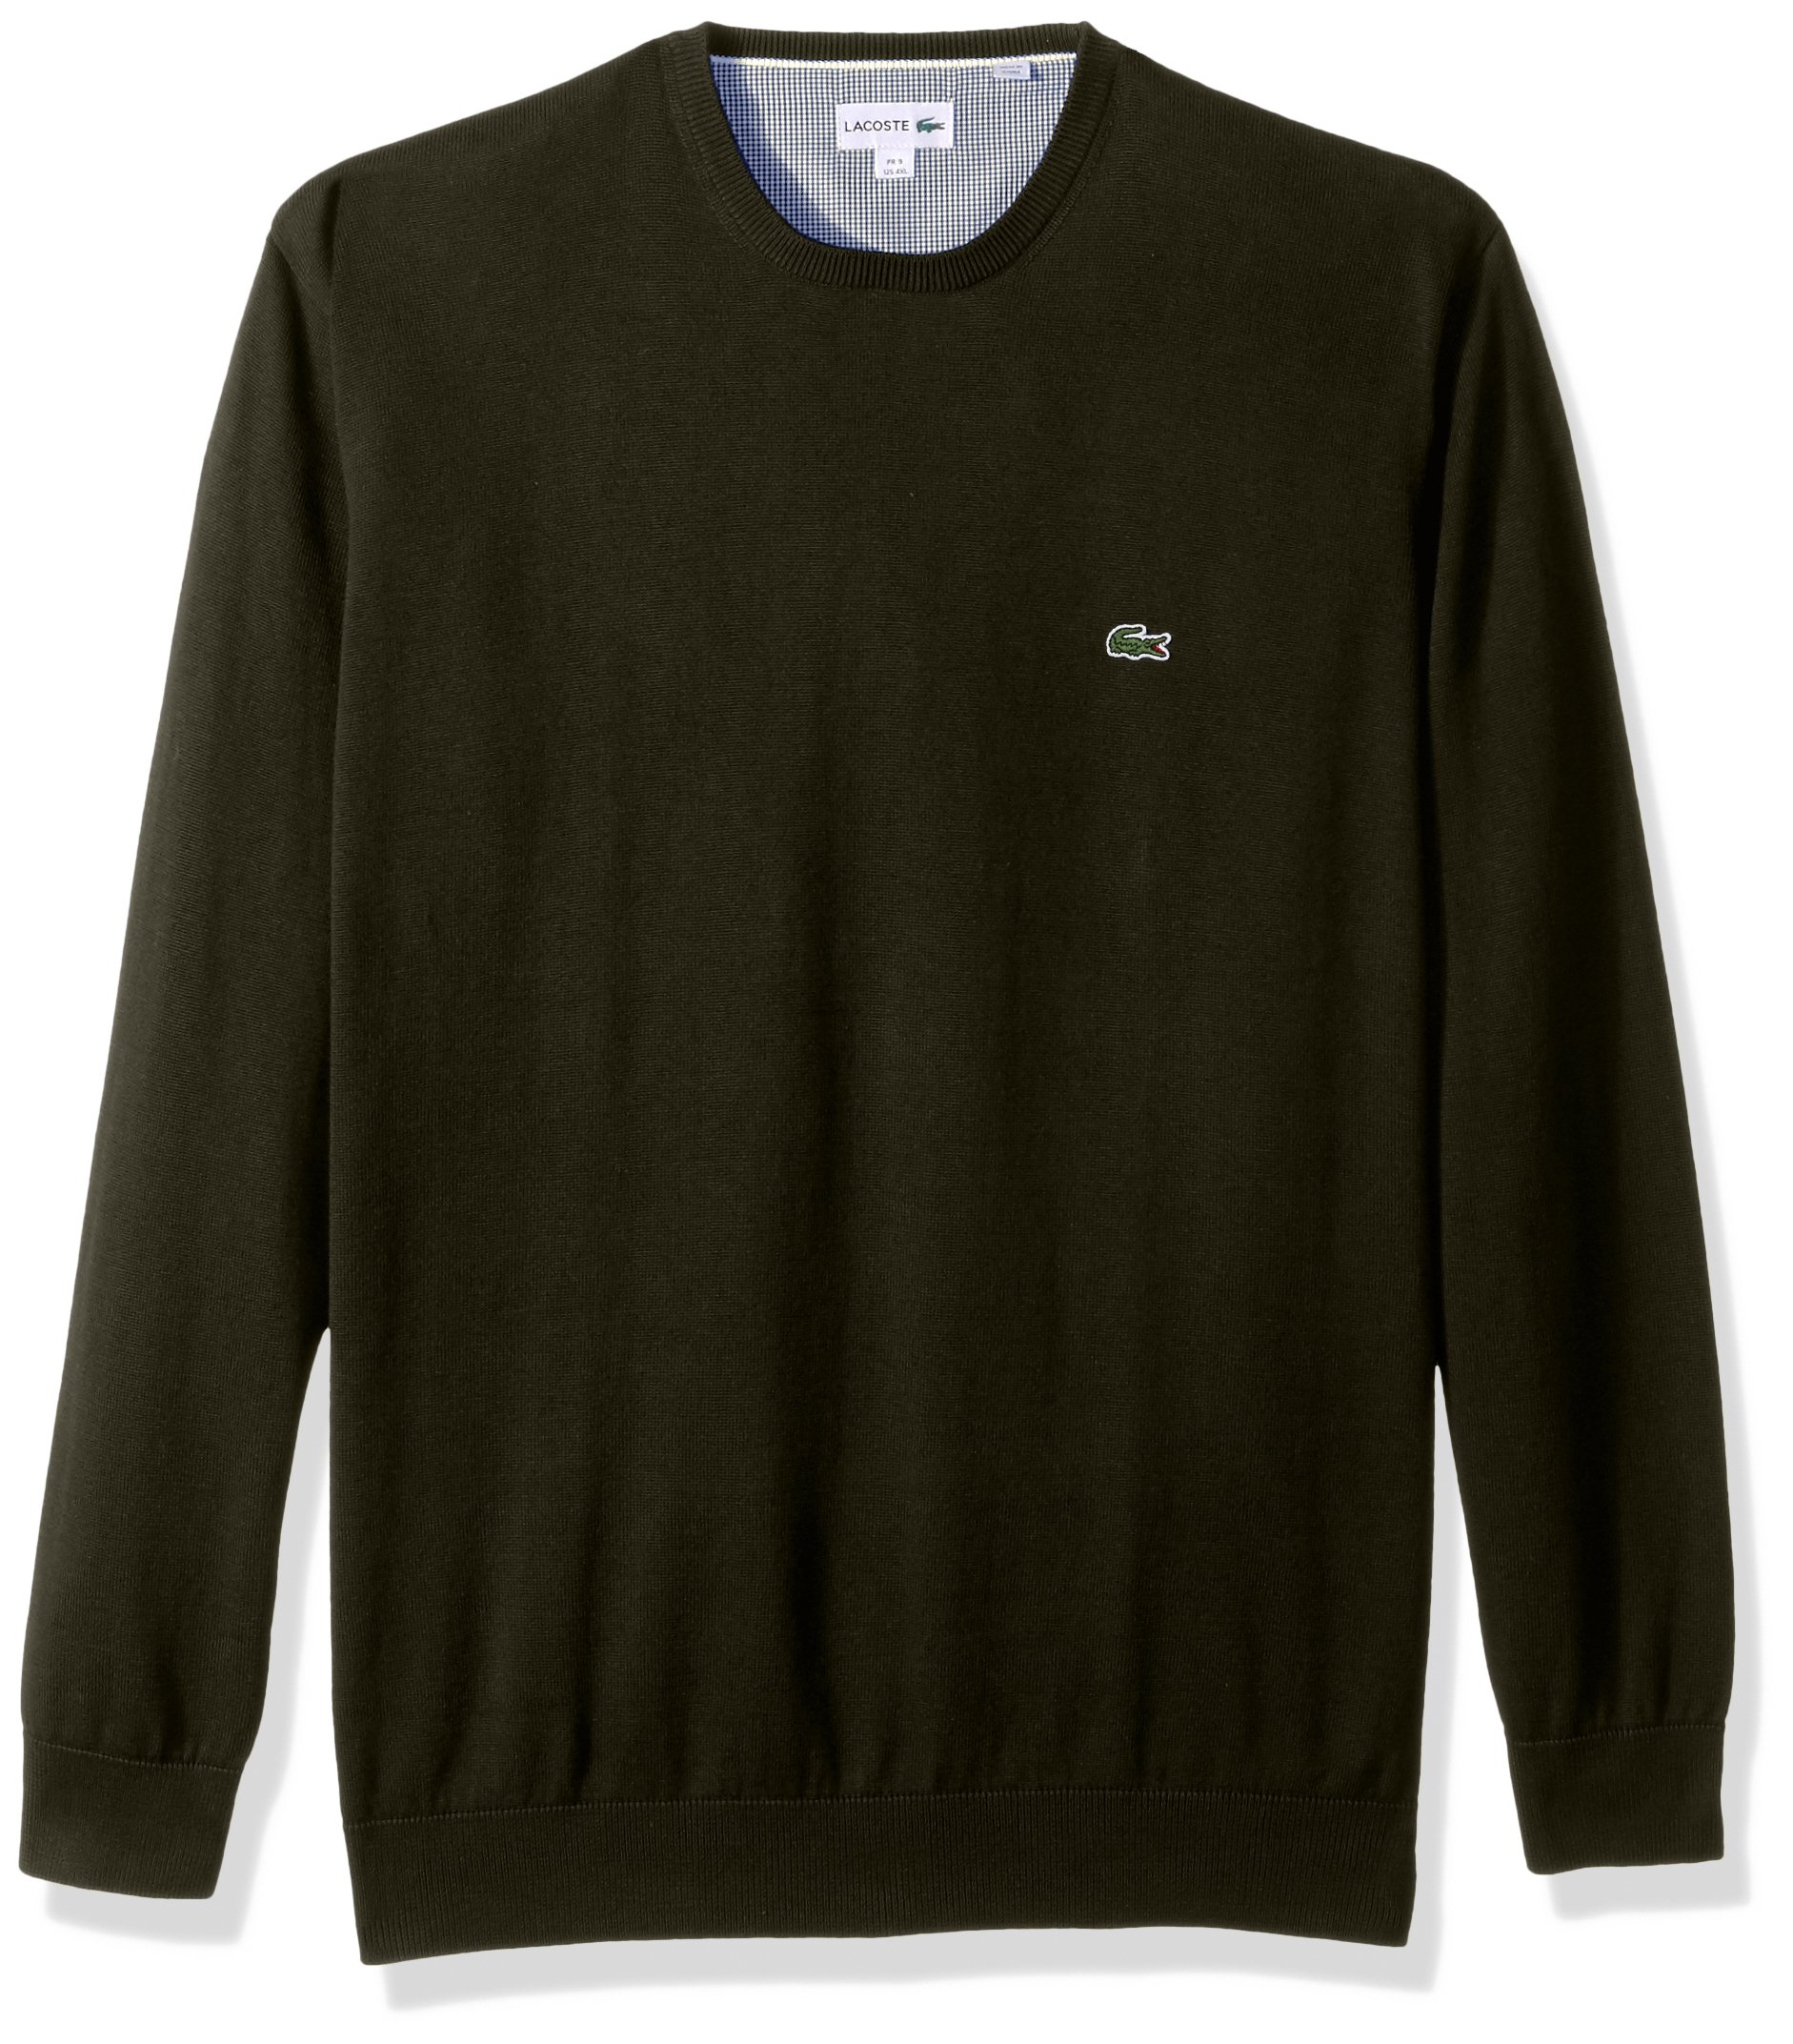 Lacoste Men's Crewneck Cotton Jersey Sweater With Green Croc, Sherwood, 9